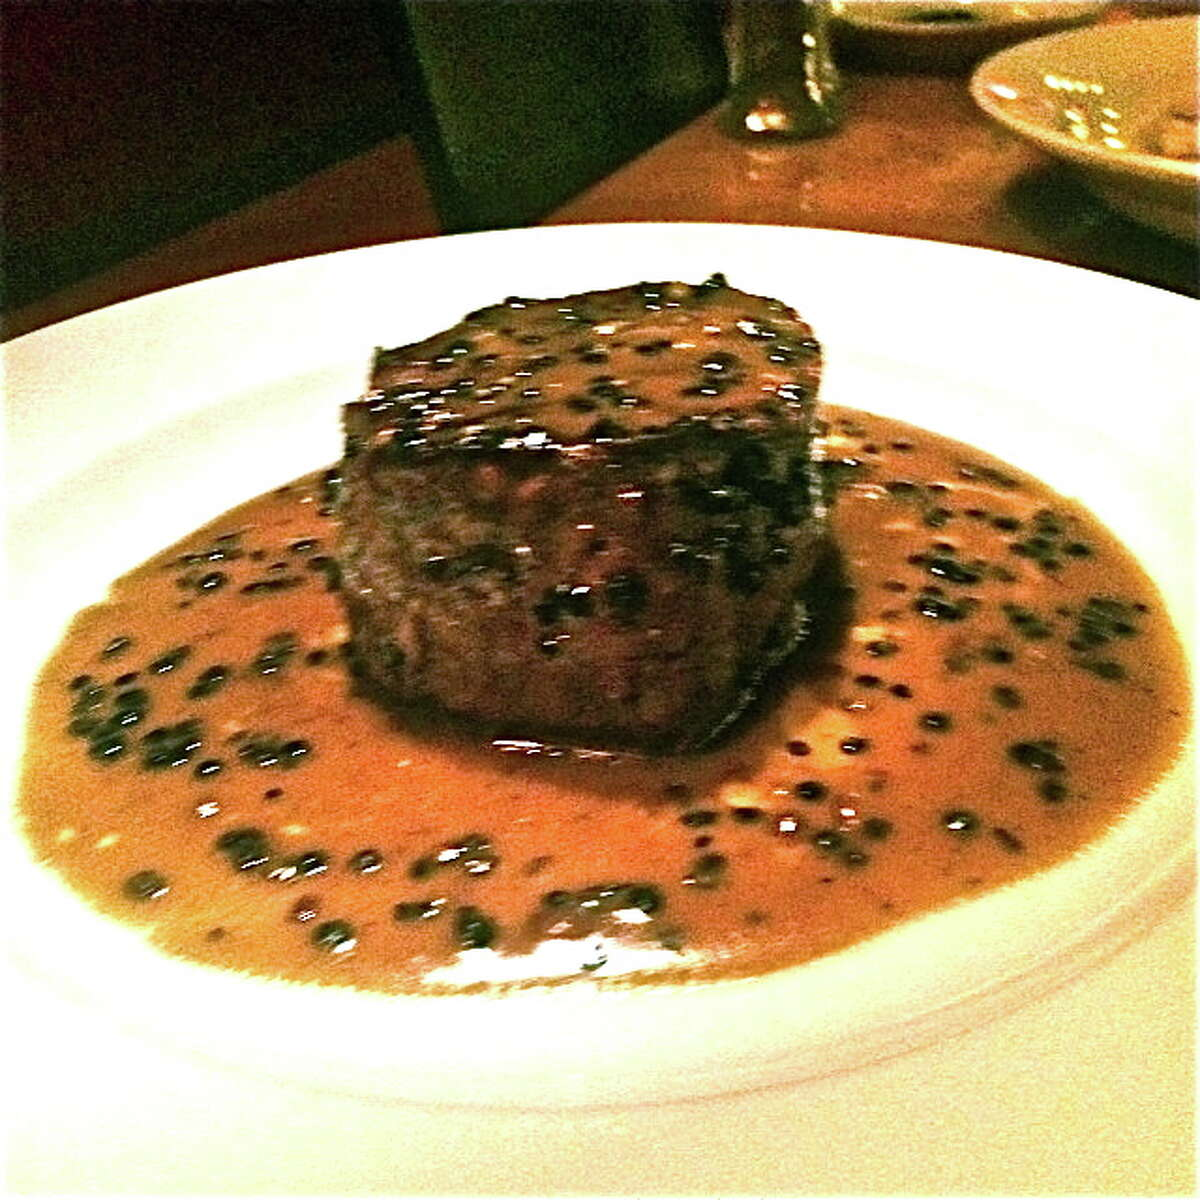 Fileto au povre with a cognac/peppercorn sauce at Mezzanotte. What Alison Cook says:This pepper-steak variant stood tall and proud in its glossy pool of cognac sauce, its texture lush velvet, its buttery sauce deep, its peppercorns packing a wake-up punch. Cuisine: Italian Entree price: $$-$$$$ Where: 13215 Grant, Cypress Phone: 832-717-7870 Website: mezzanotte.tv Read Alison Cook's review of Mezzanotte